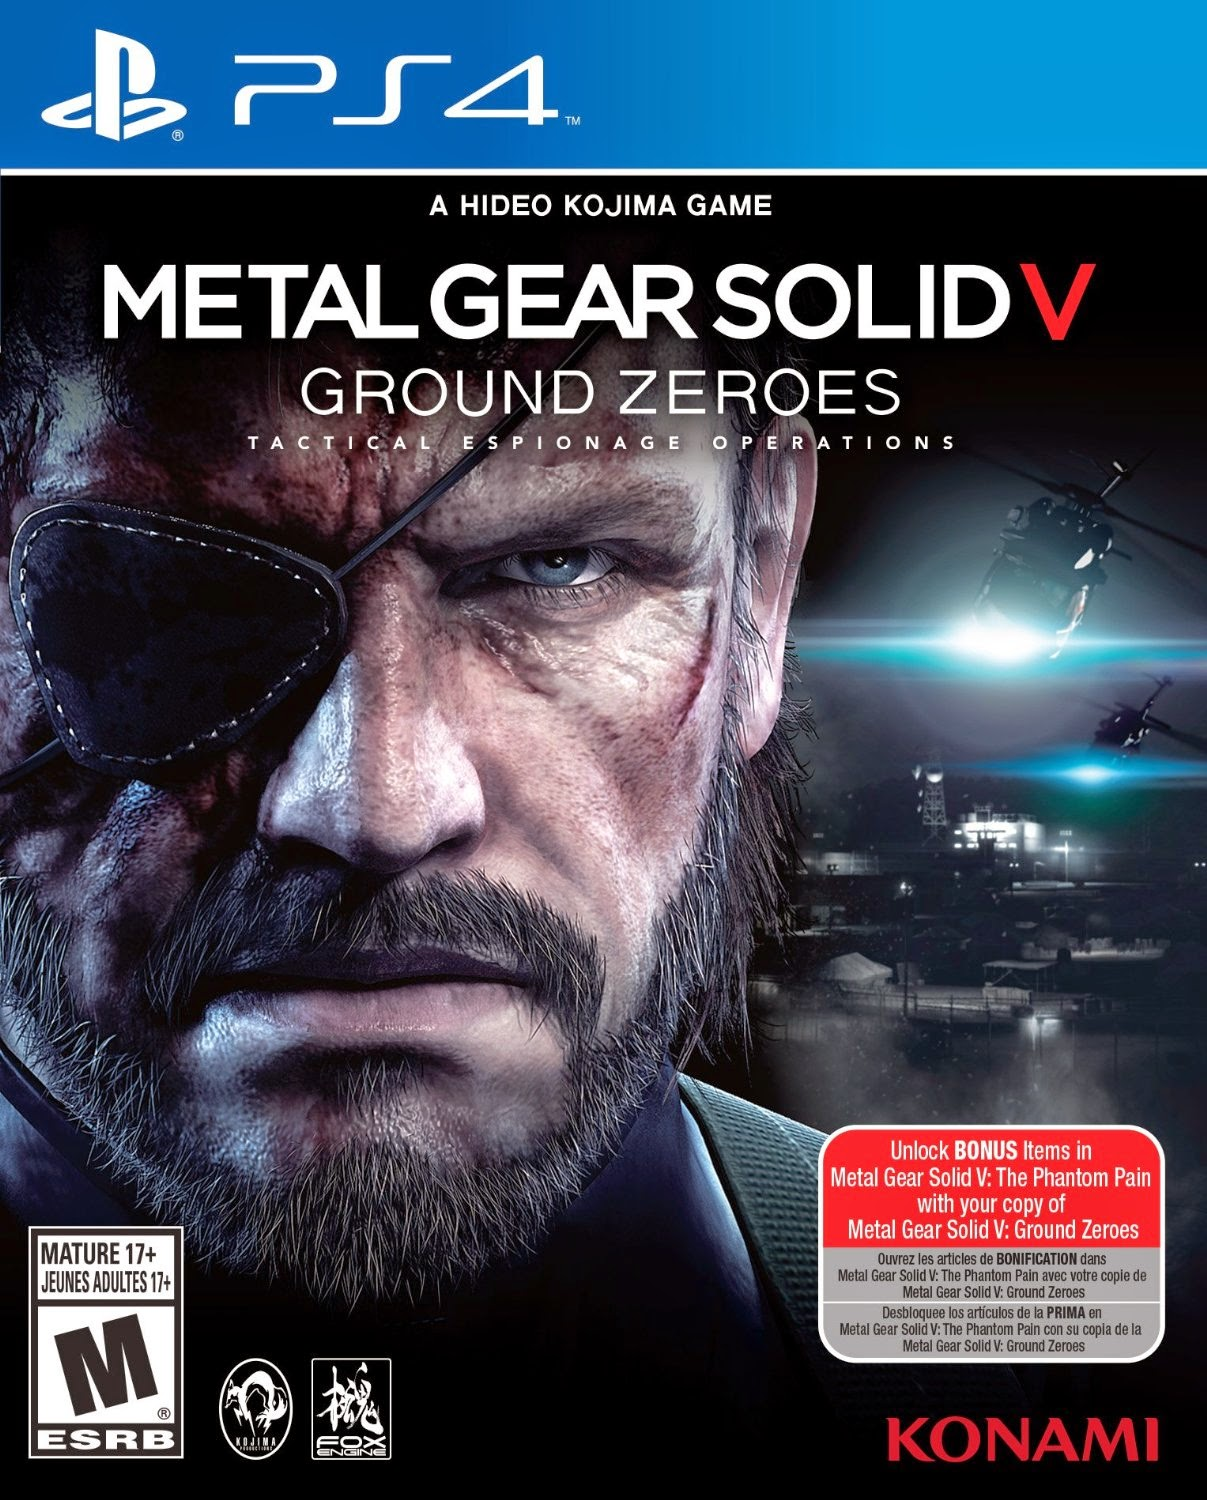 Metal Gear Solid V: Ground Zeroes (Video Game Review